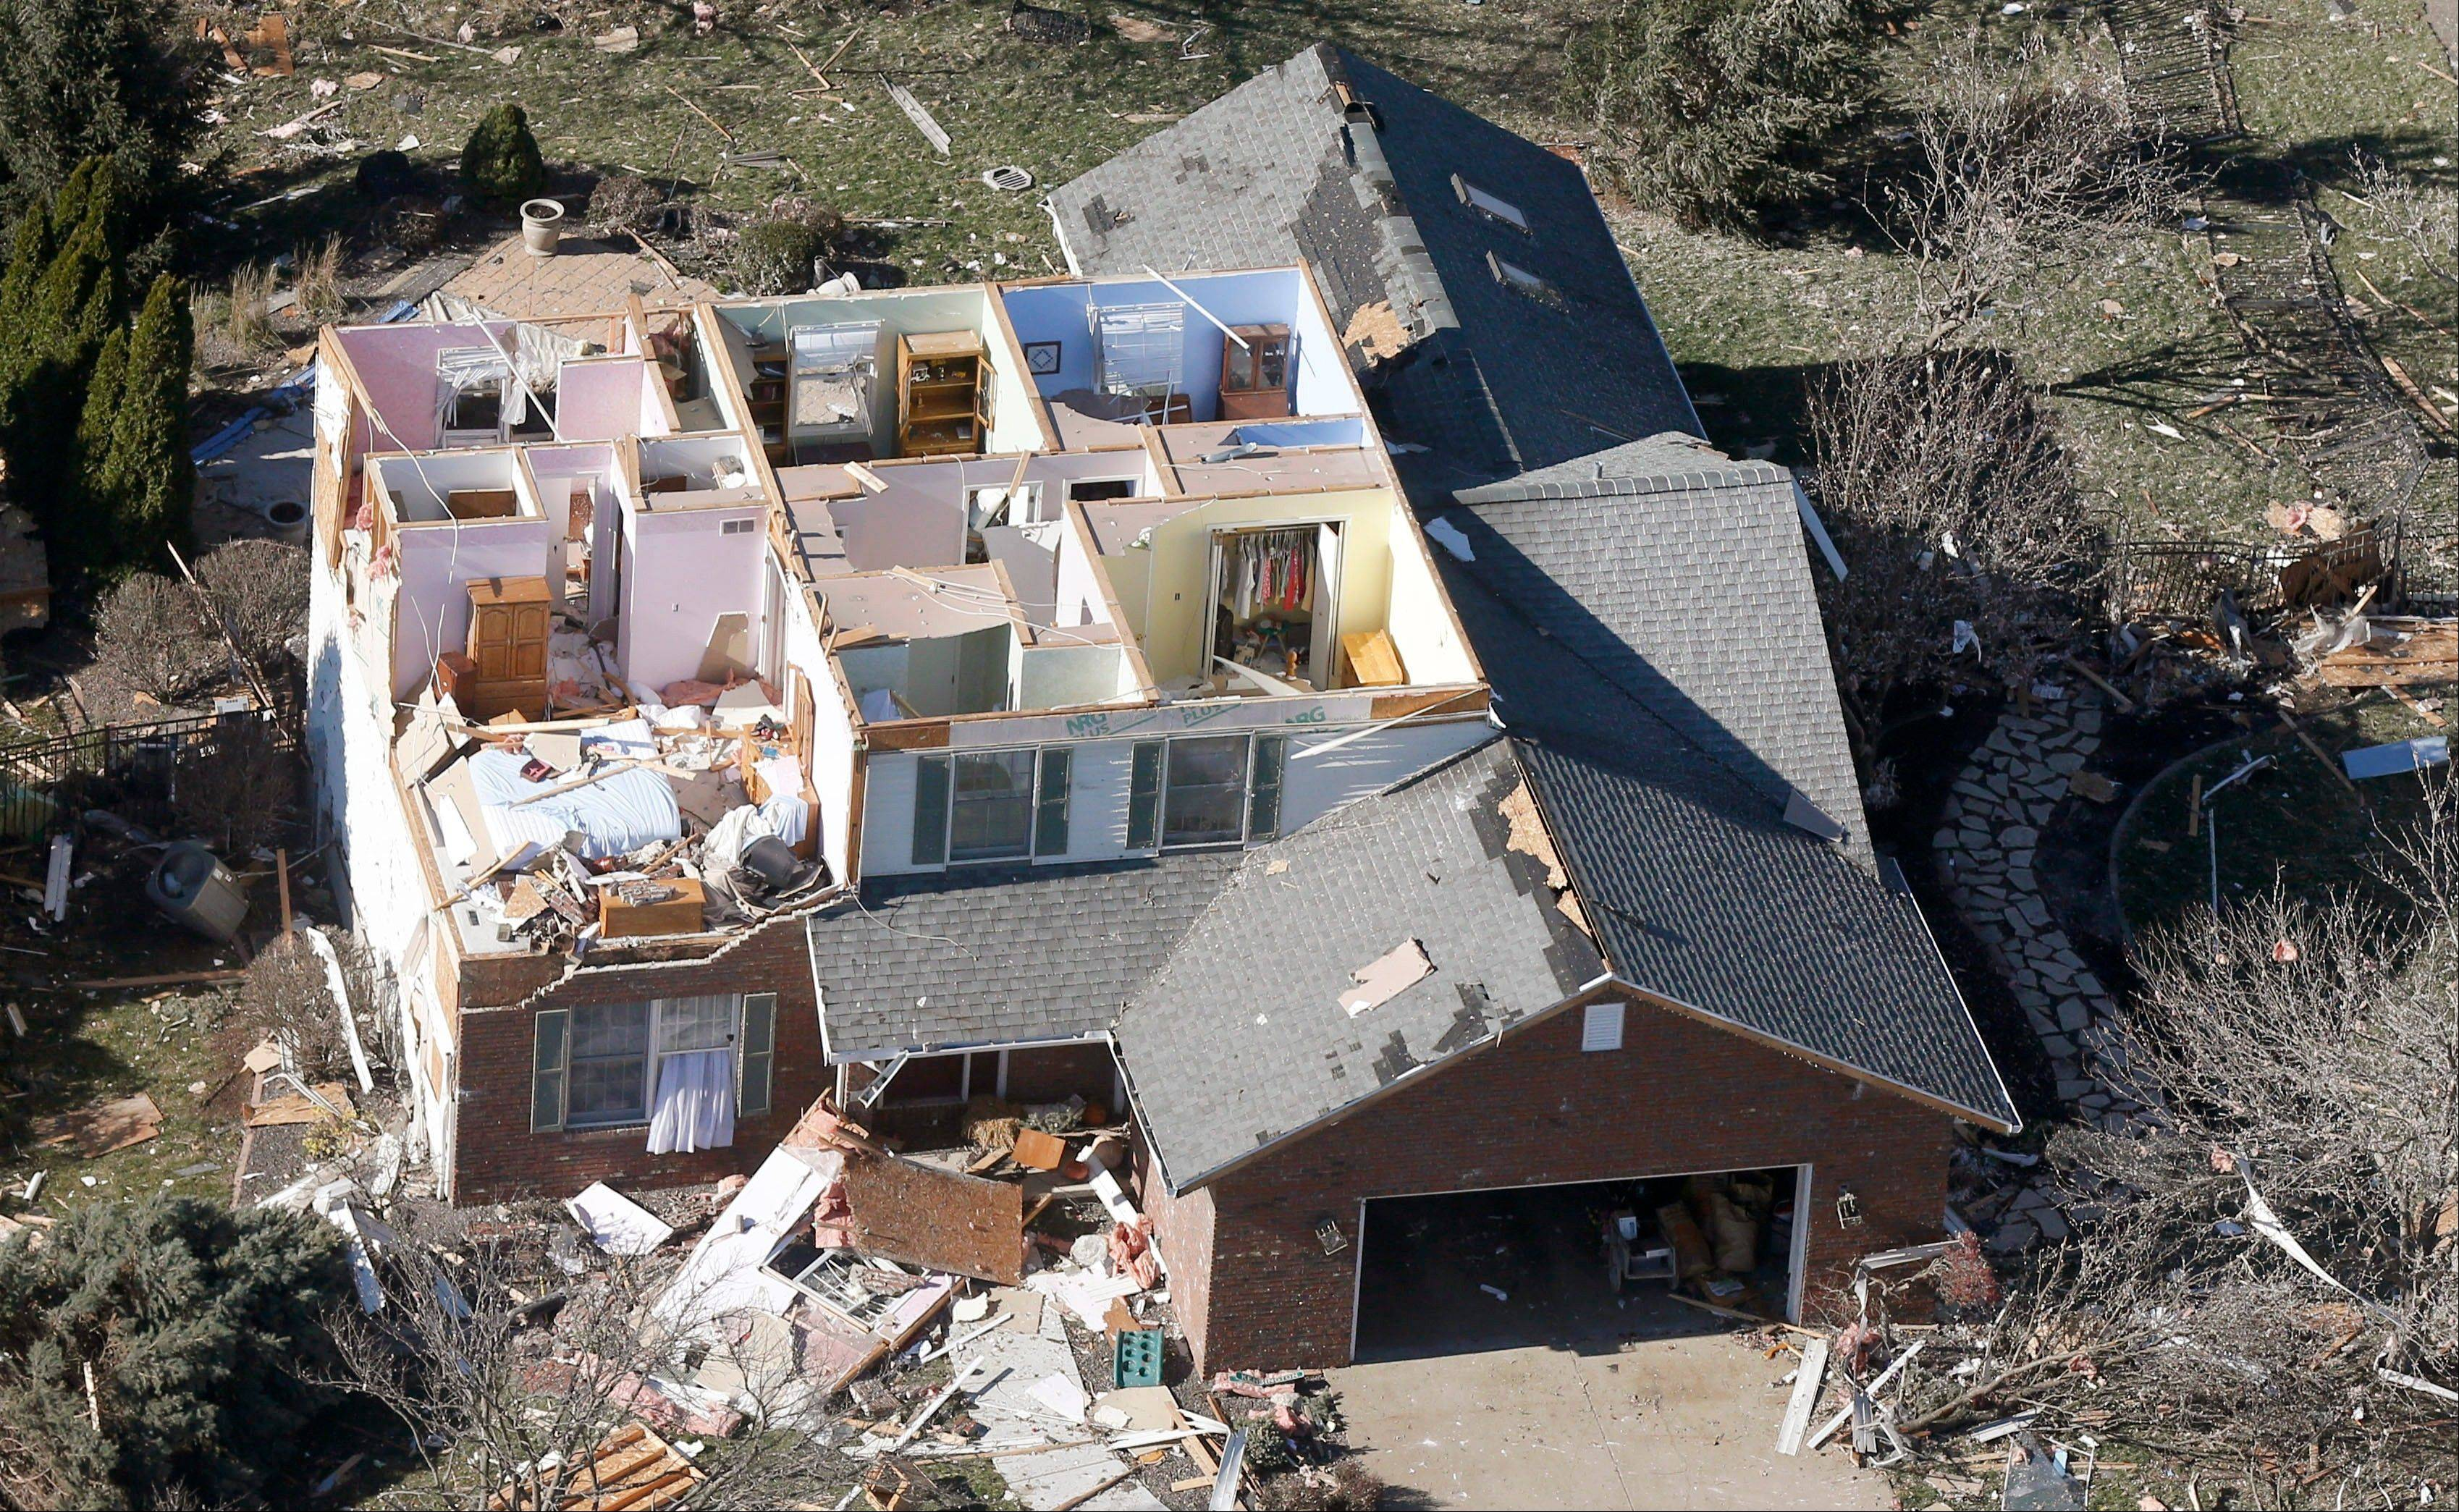 This aerial view on Monday, Nov. 18, 2013, shows a home that was damaged by a tornado that hit the western Illinois town of Washington on Sunday. It was one of the worst-hit areas after intense storms and tornadoes swept through Illinois. The National Weather Service says the tornado that hit Washington had a preliminary rating of EF-4, meaning wind speeds of 170 mph to 190 mph.